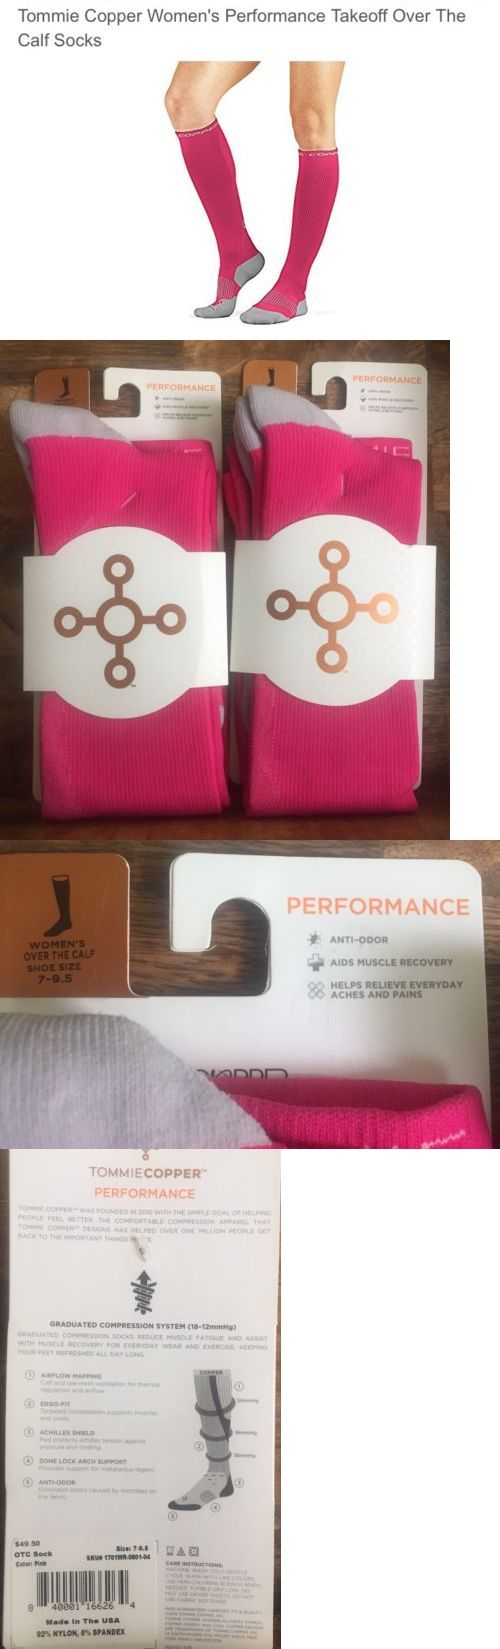 Socks 66078: 2 Pairs Tommie Copper Women S Over The Calf Socks Compression Socks Pink 7-9.5 -> BUY IT NOW ONLY: $35 on eBay!